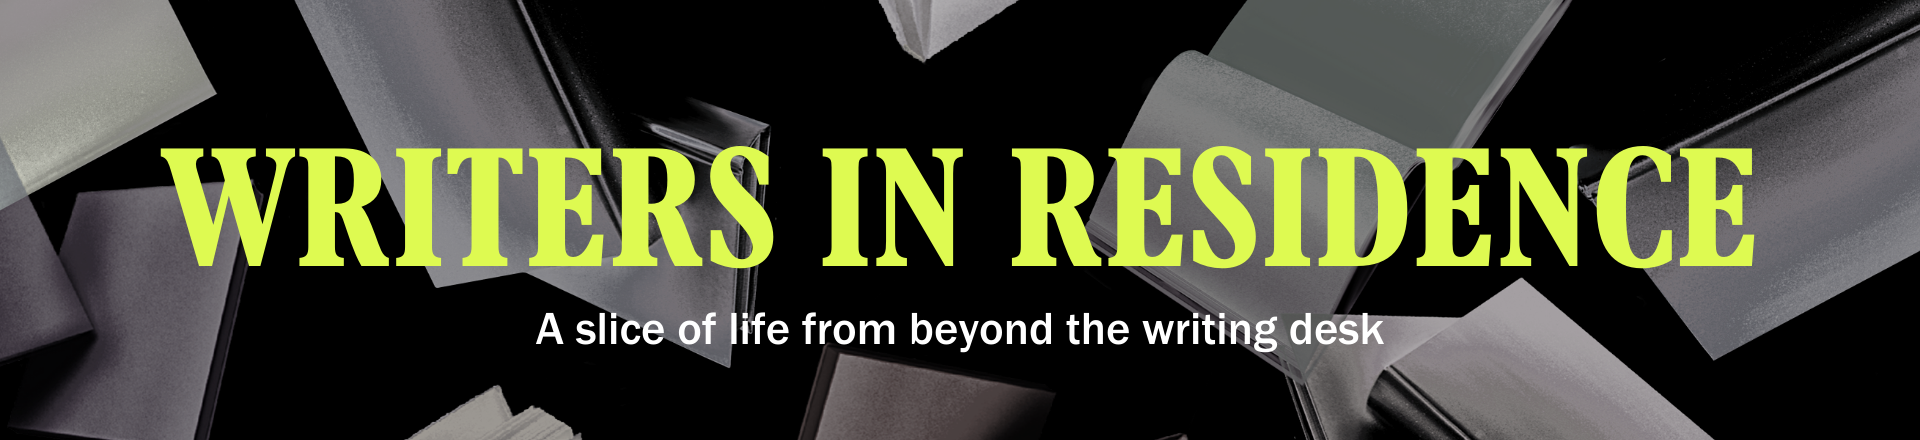 Writers in Residence: A slice of life from beyond the writing desk